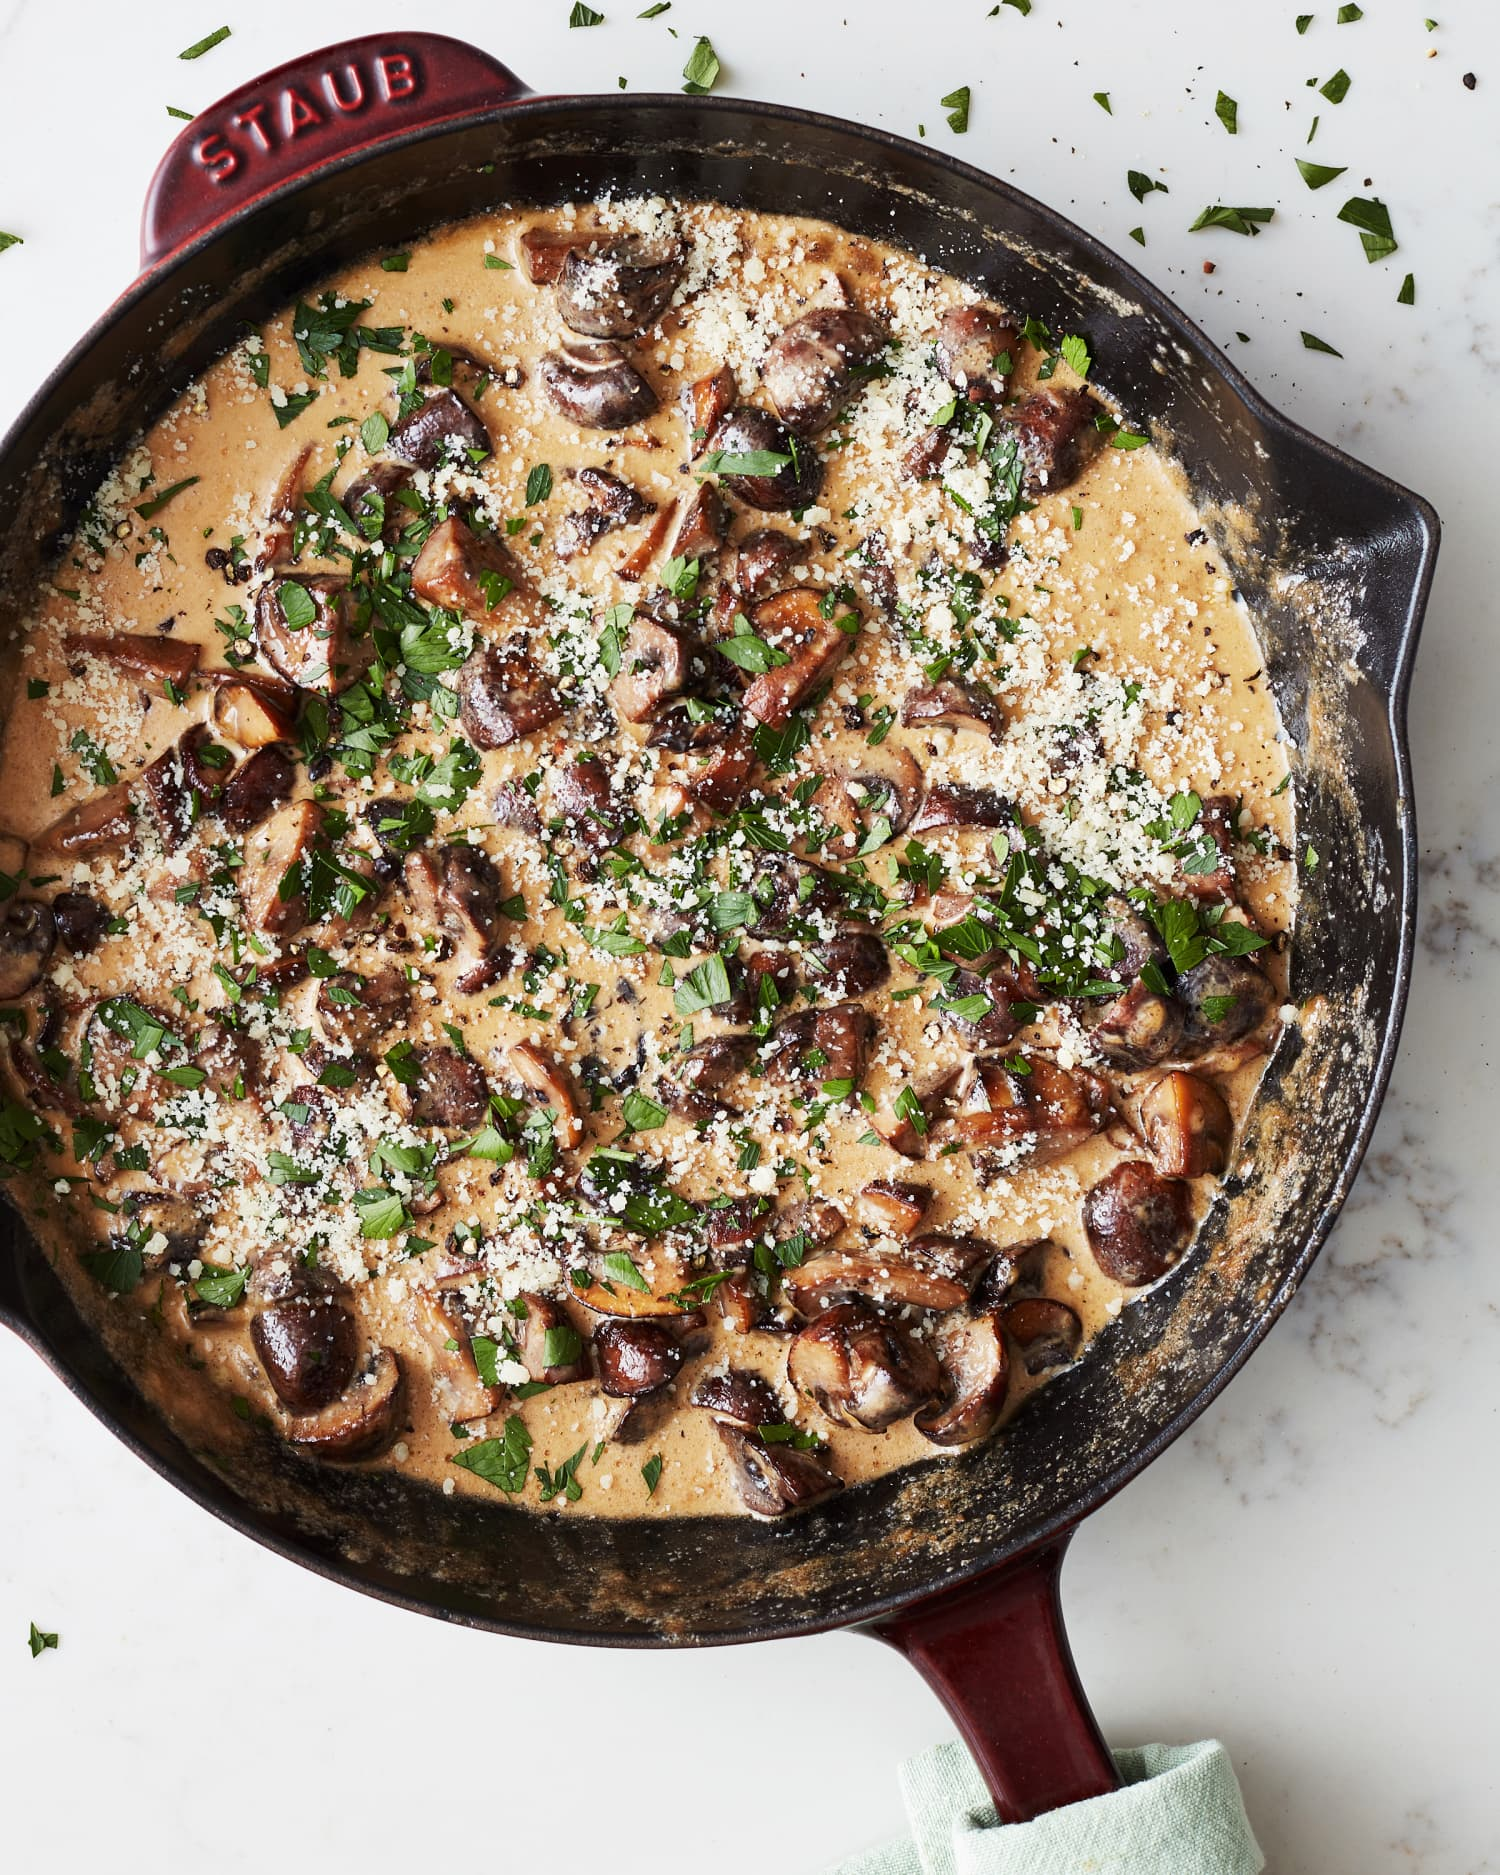 Creamy Garlic Parmesan Mushrooms Instantly Upgrade Everything They Touch